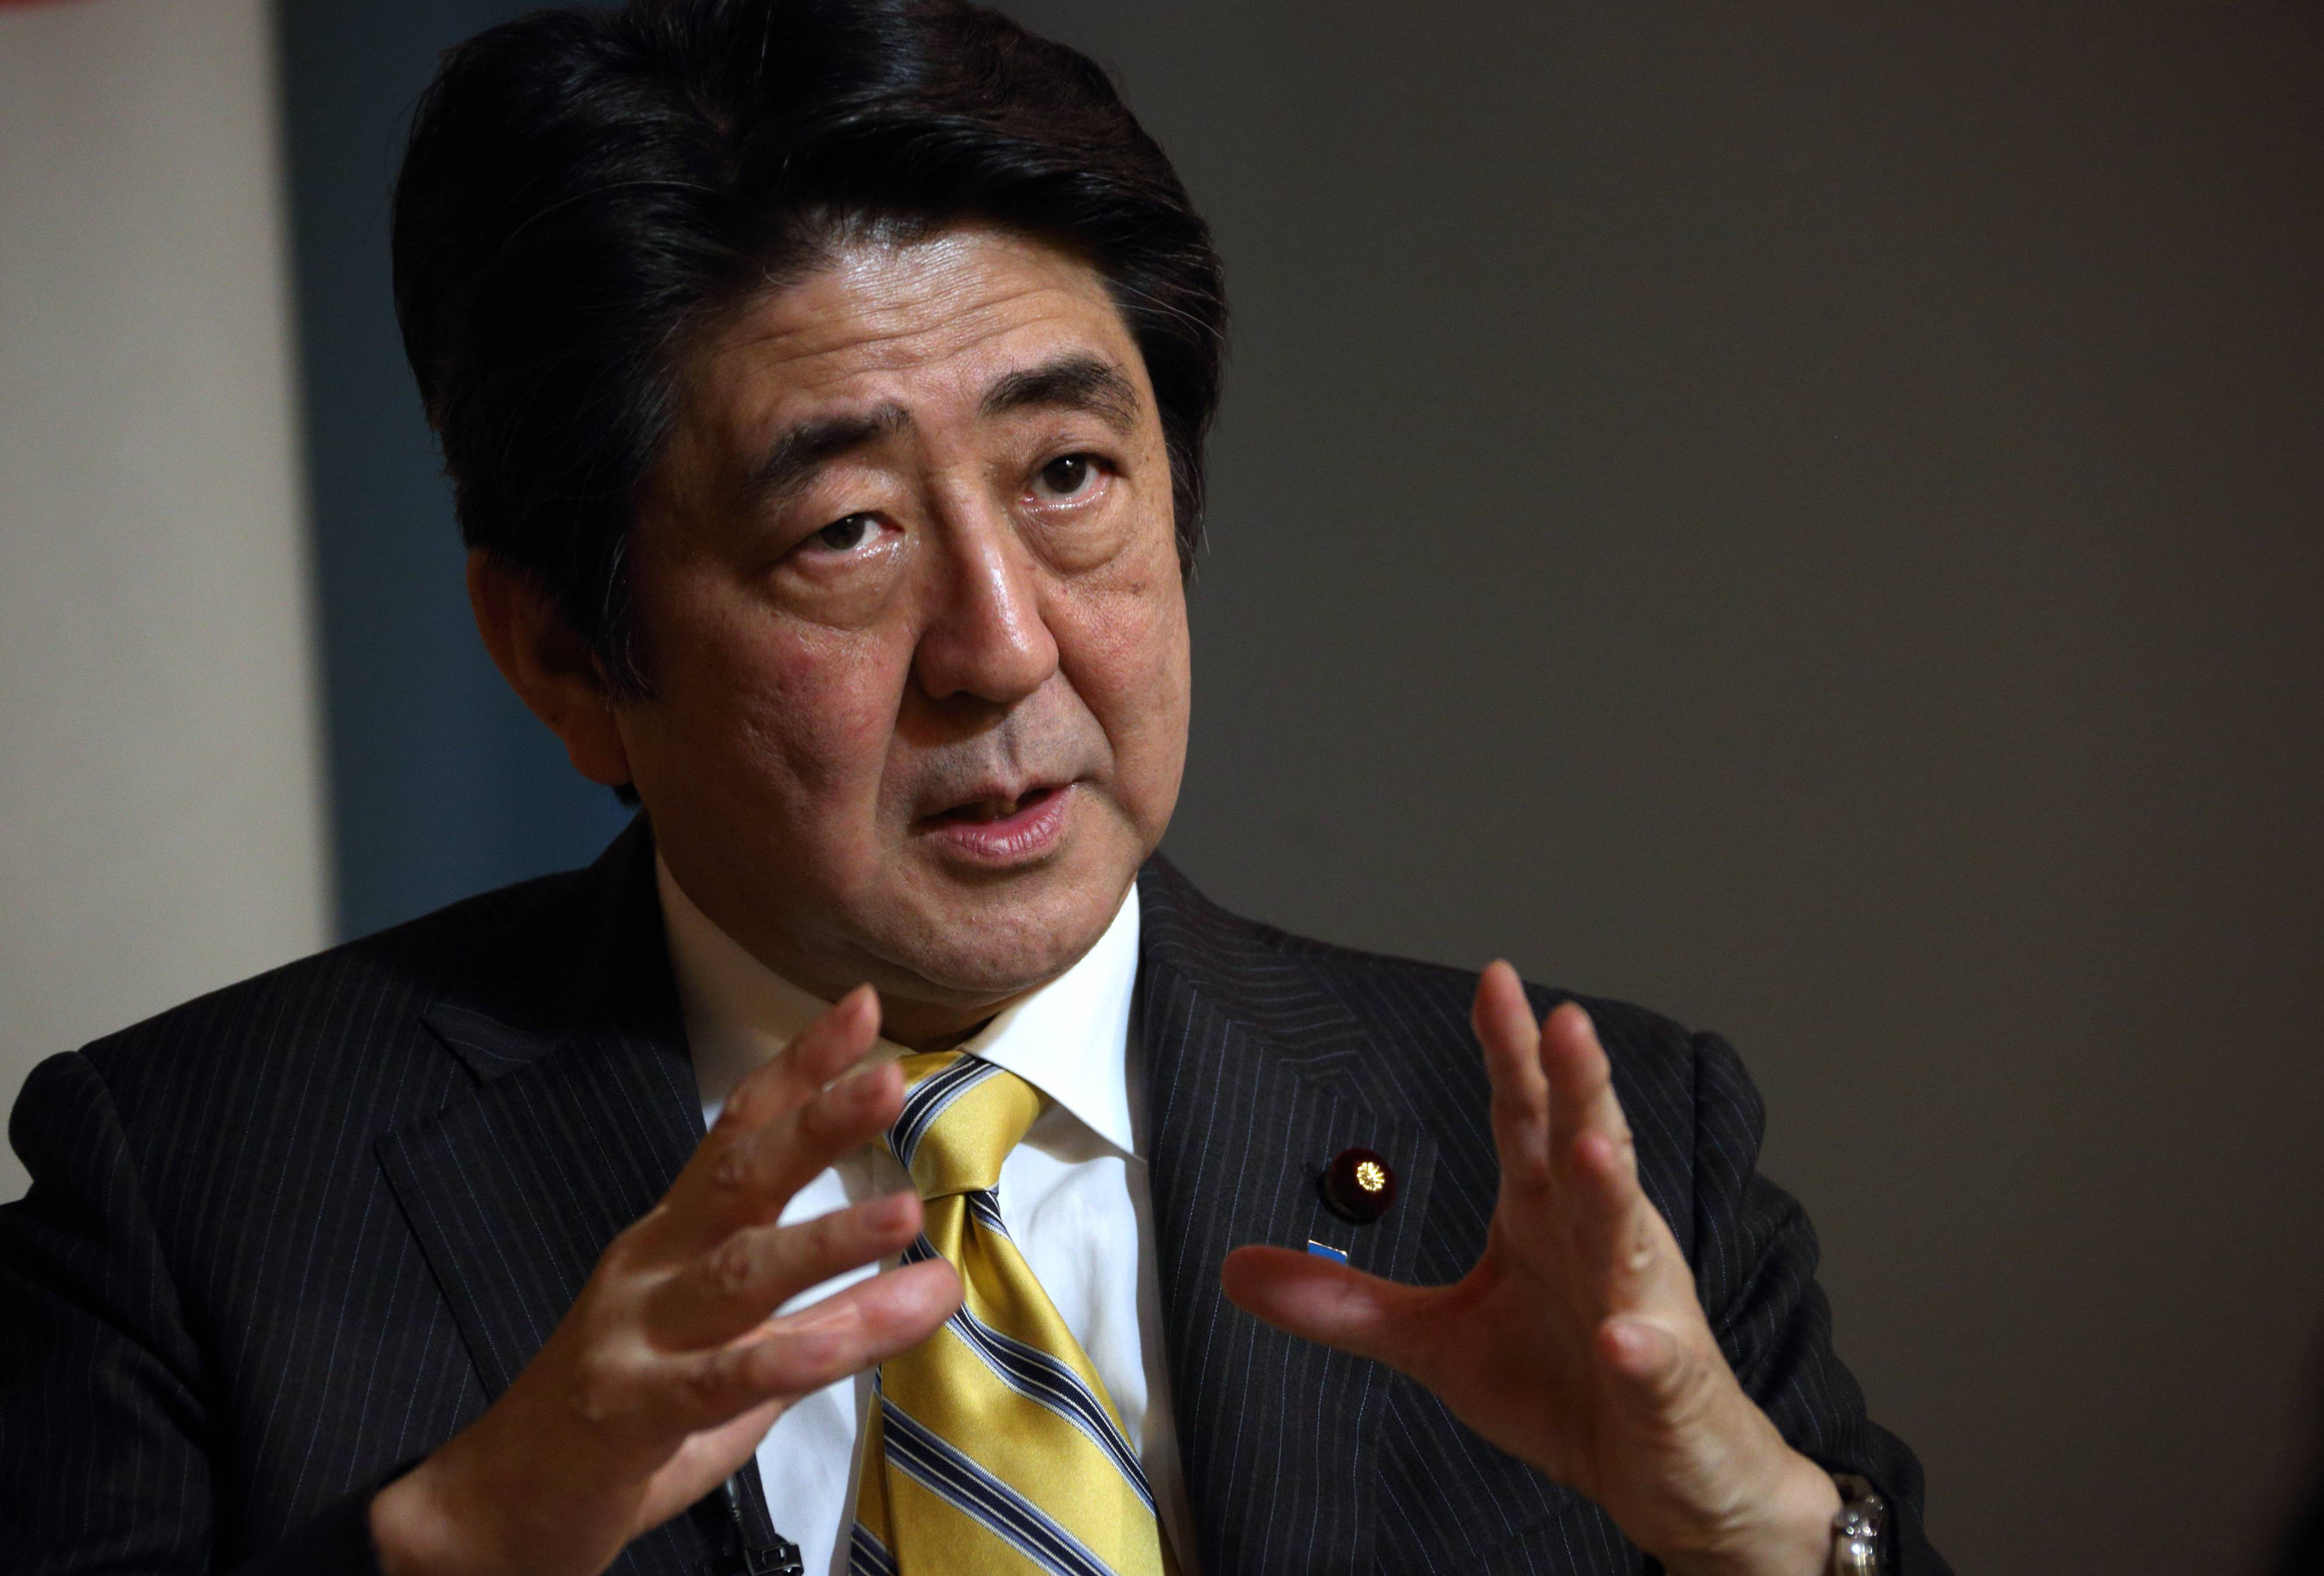 Shinzo Abe, Japan's prime minister, speaks Thursday during an interview at the prime minister's official residence in Tokyo.